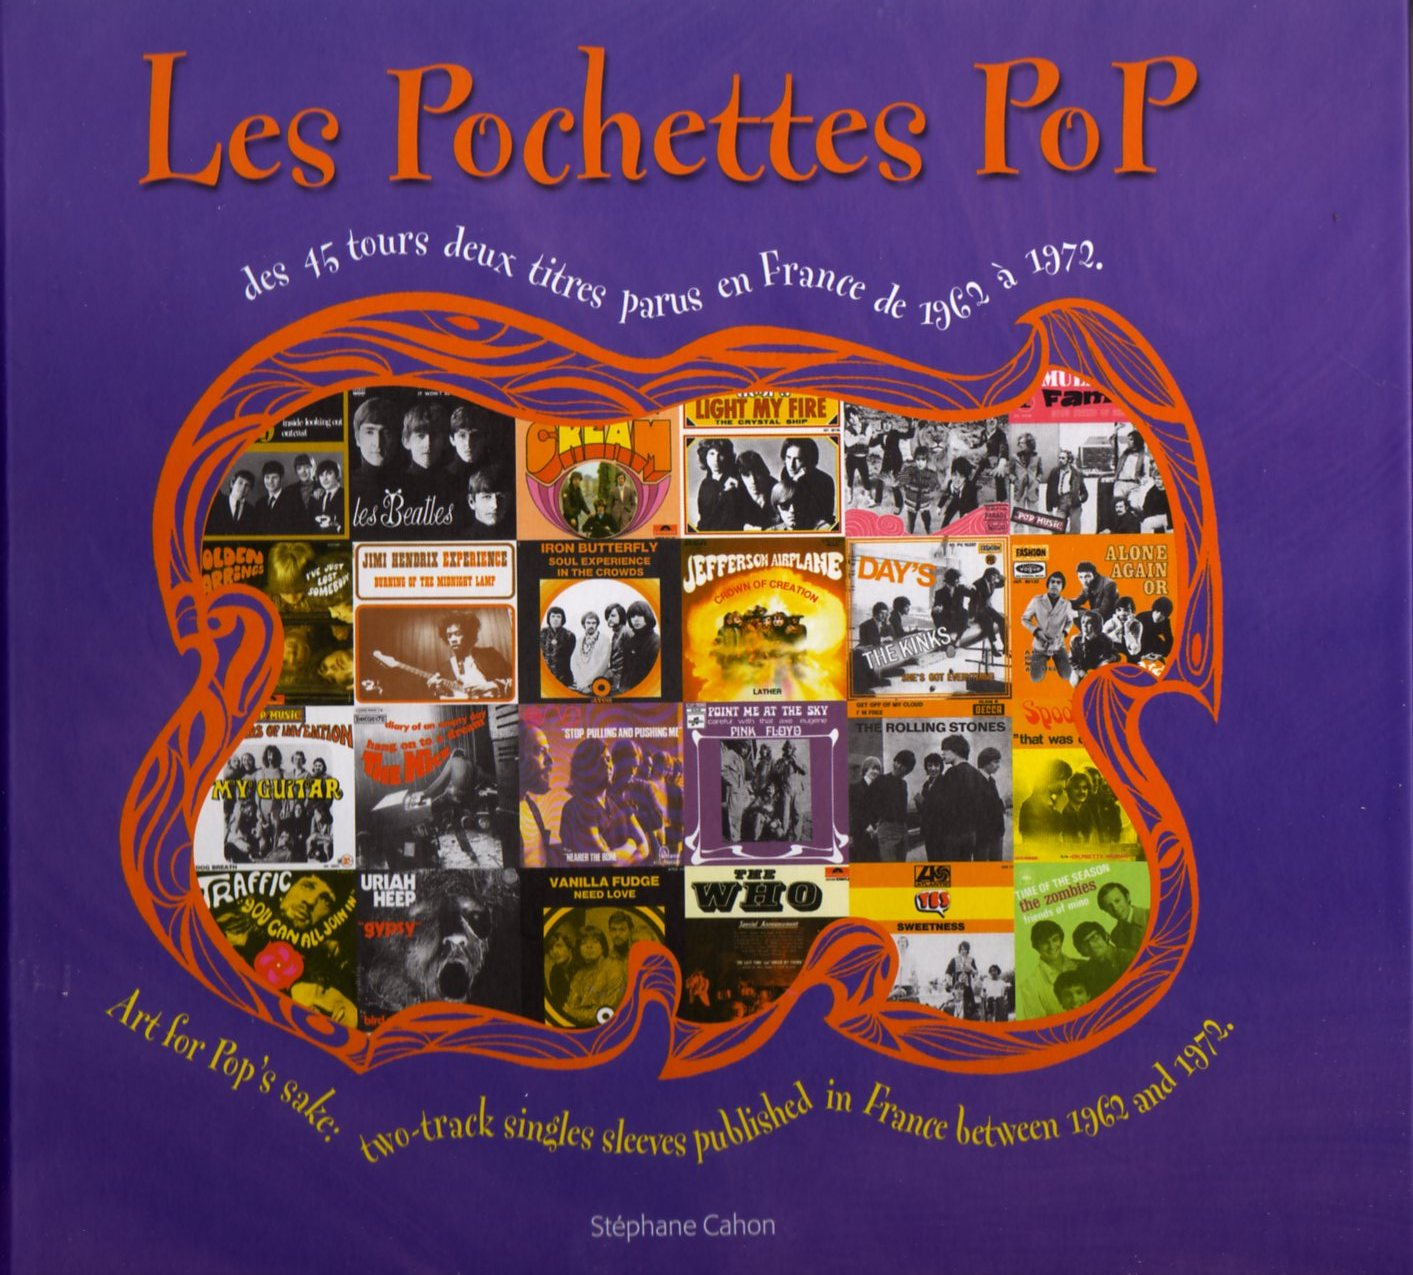 http://www.encyclopedisque.fr/static/pochettespop.jpg